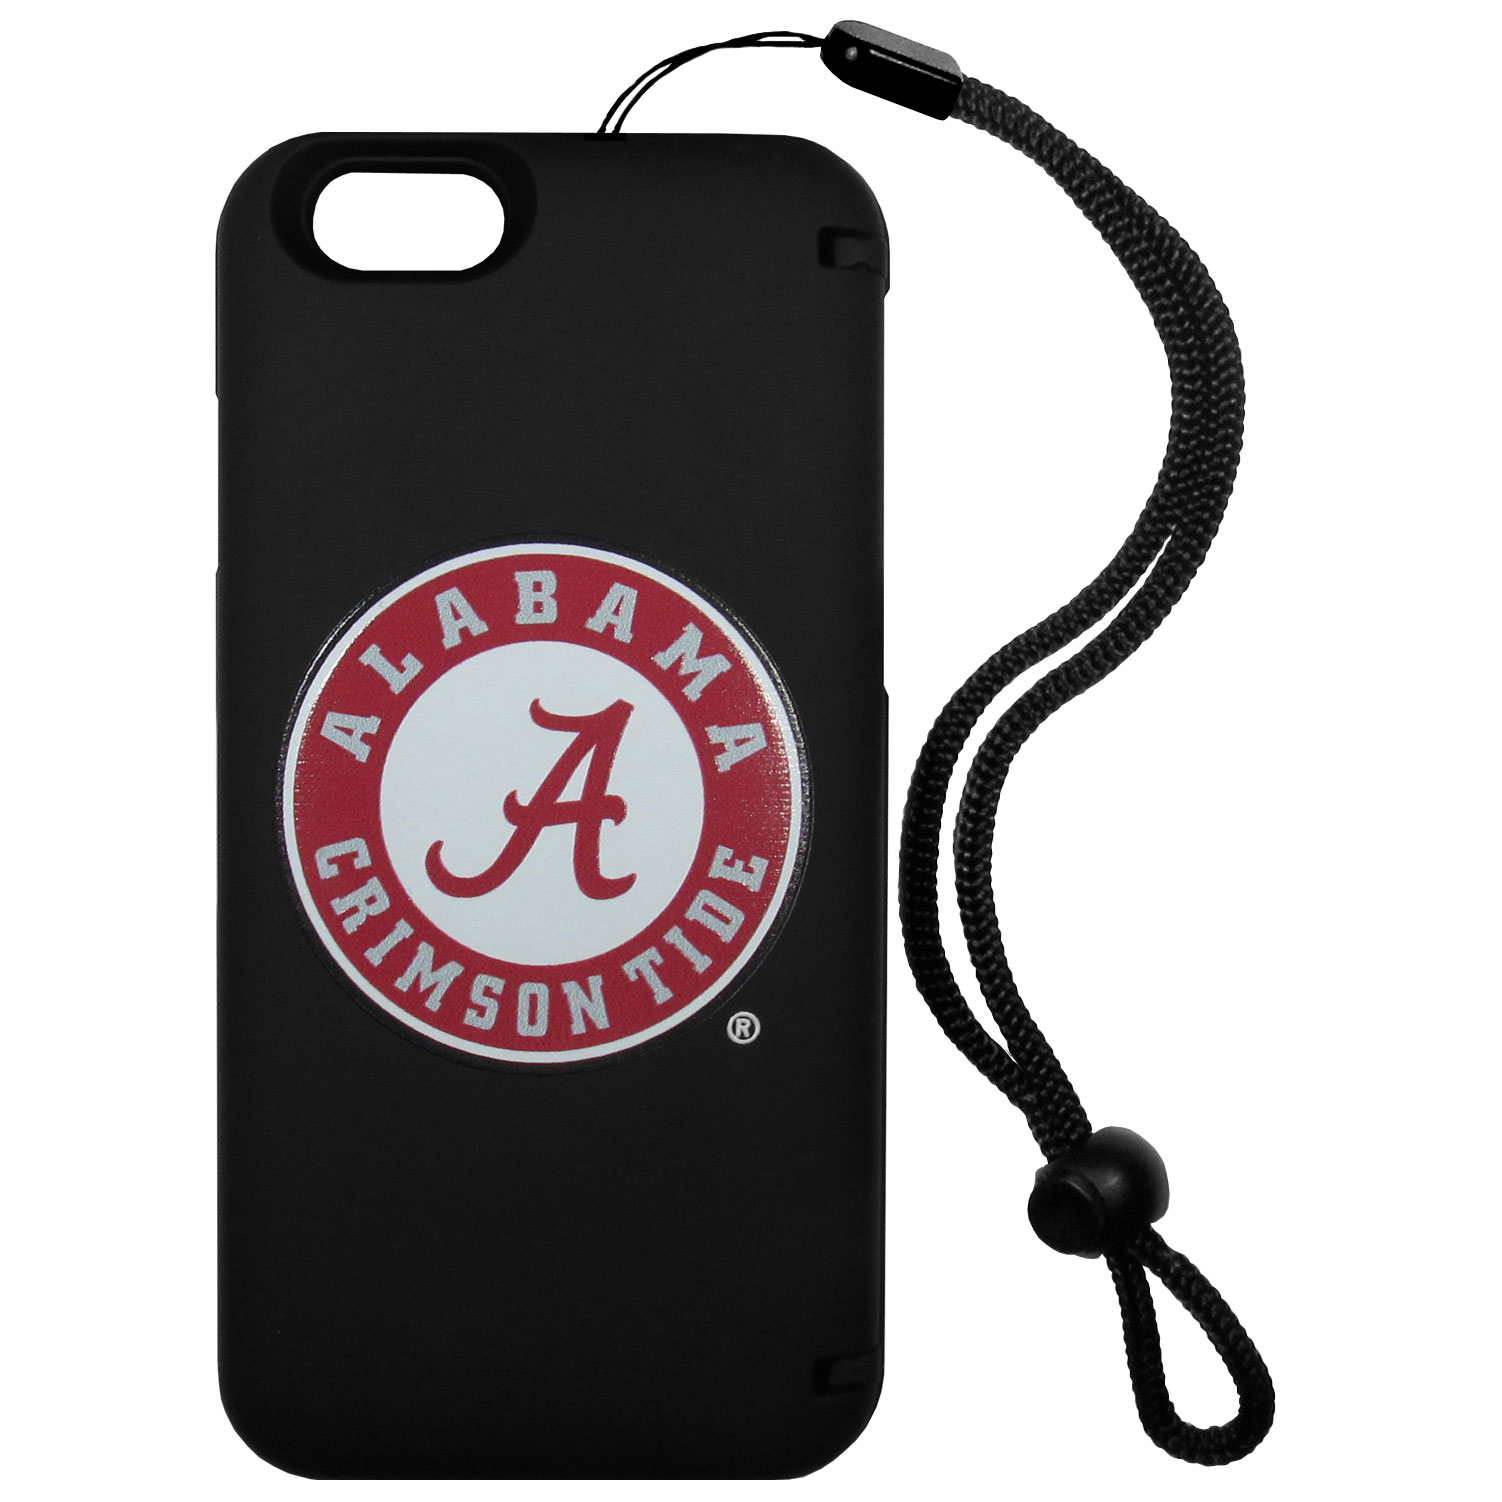 Alabama Crimson Tide iPhone 6 Everything Case - This case really does have everything but the kitchen sink! The hidden compartment lets you keep your cards, money and tickets to the big game safe and secure and has a compact mirror so you can make sure your game face is ready to go. It also comes with a kickstand to make chatting and watching videos a breeze. The wrist strap allows you to travel with ease with your everything case. If that's not enough, it also comes with the Alabama Crimson Tide logo printed in expert detail on the front.